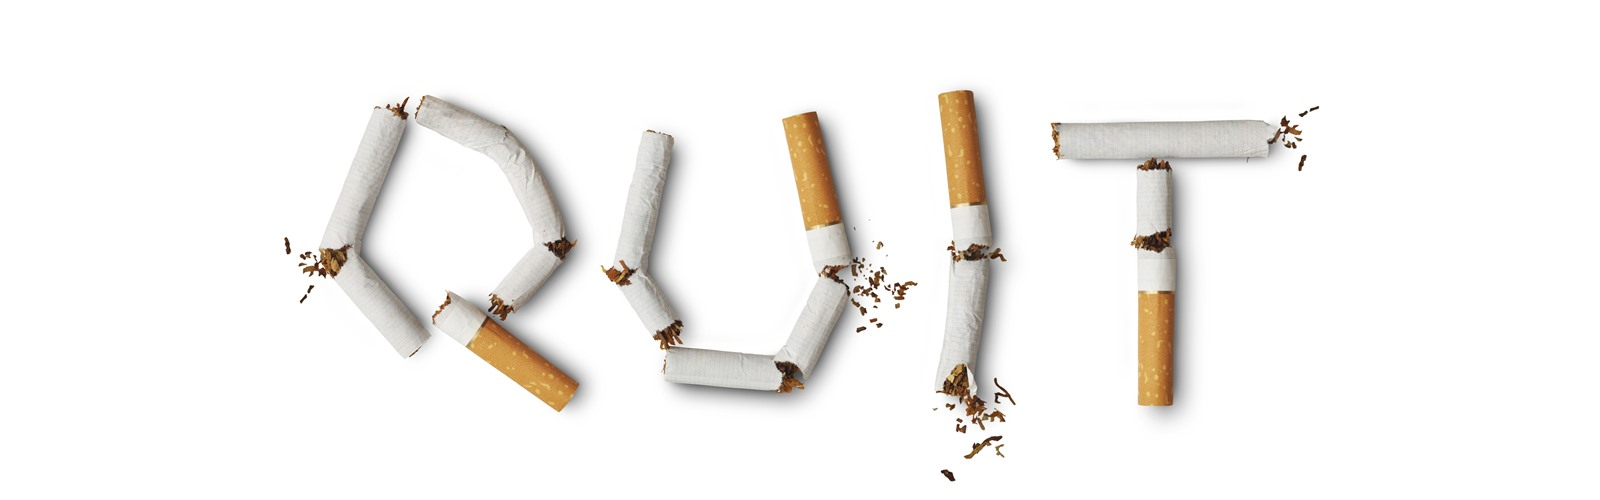 "The word ""quit"" spelled using broken cigarettes"